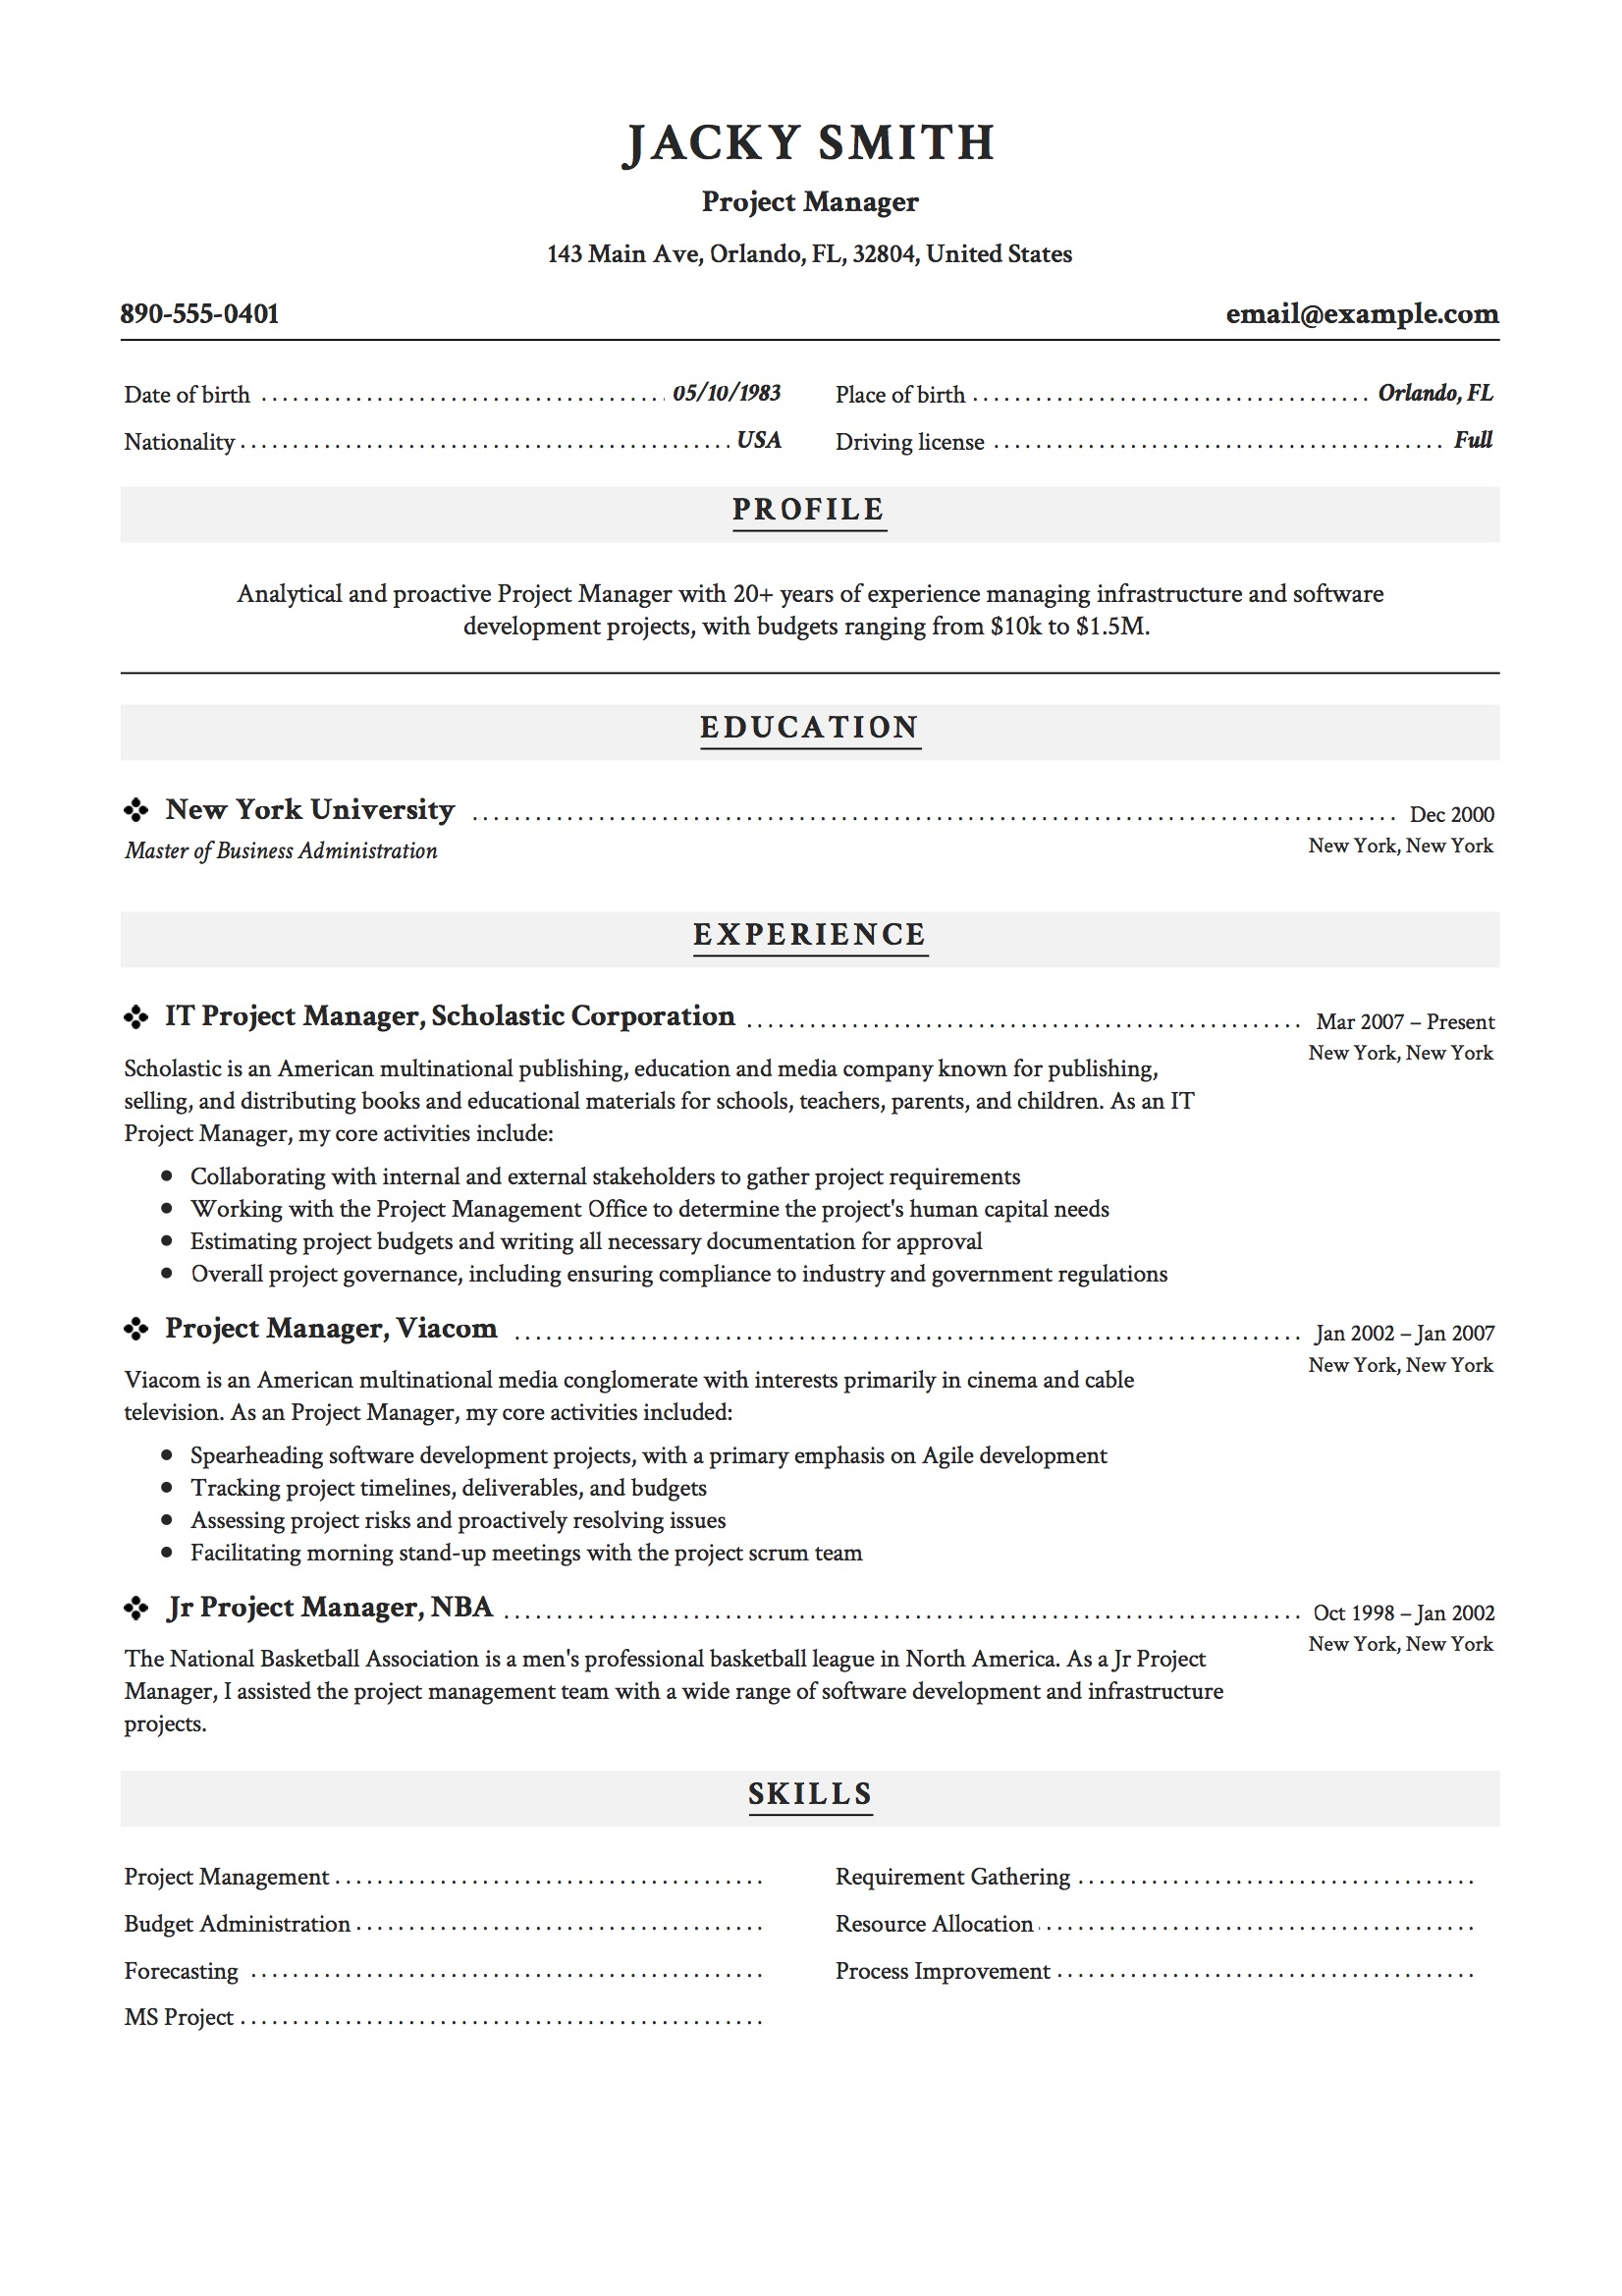 Project Manager Resume Sample  Software Project Manager Resume